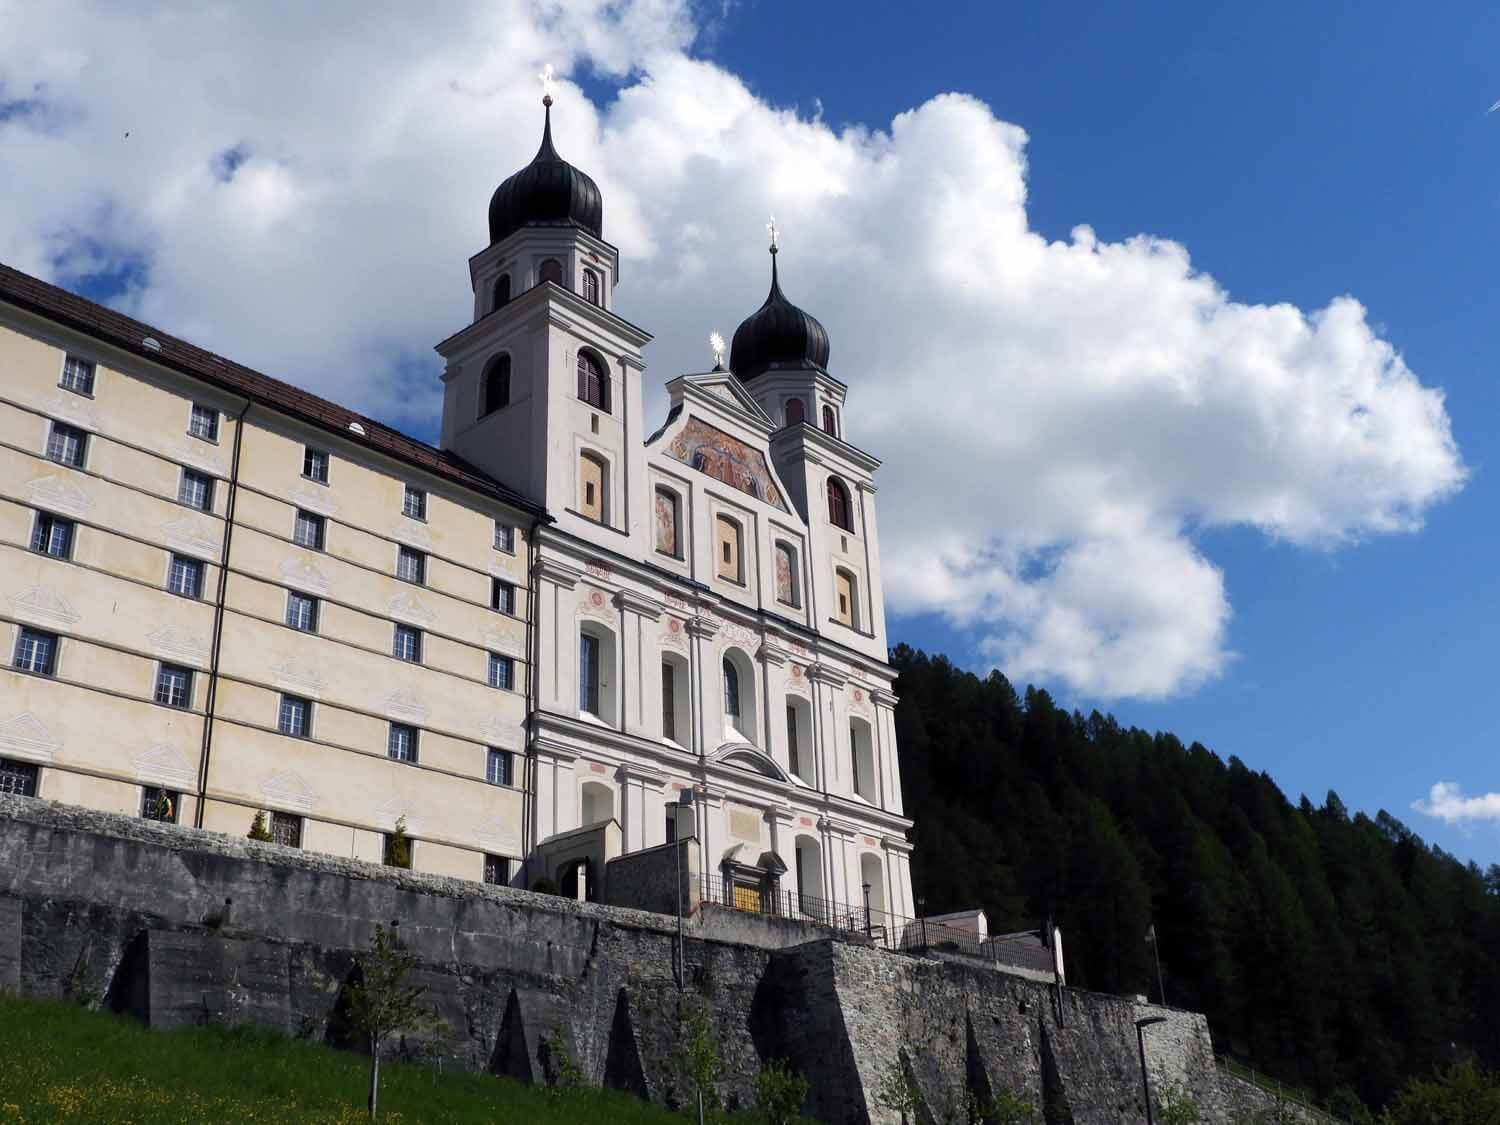 switzerland-oberalppass-vorderrhein-river-valley-monestary-kloster-disentis-clouds-blue-sky.JPG